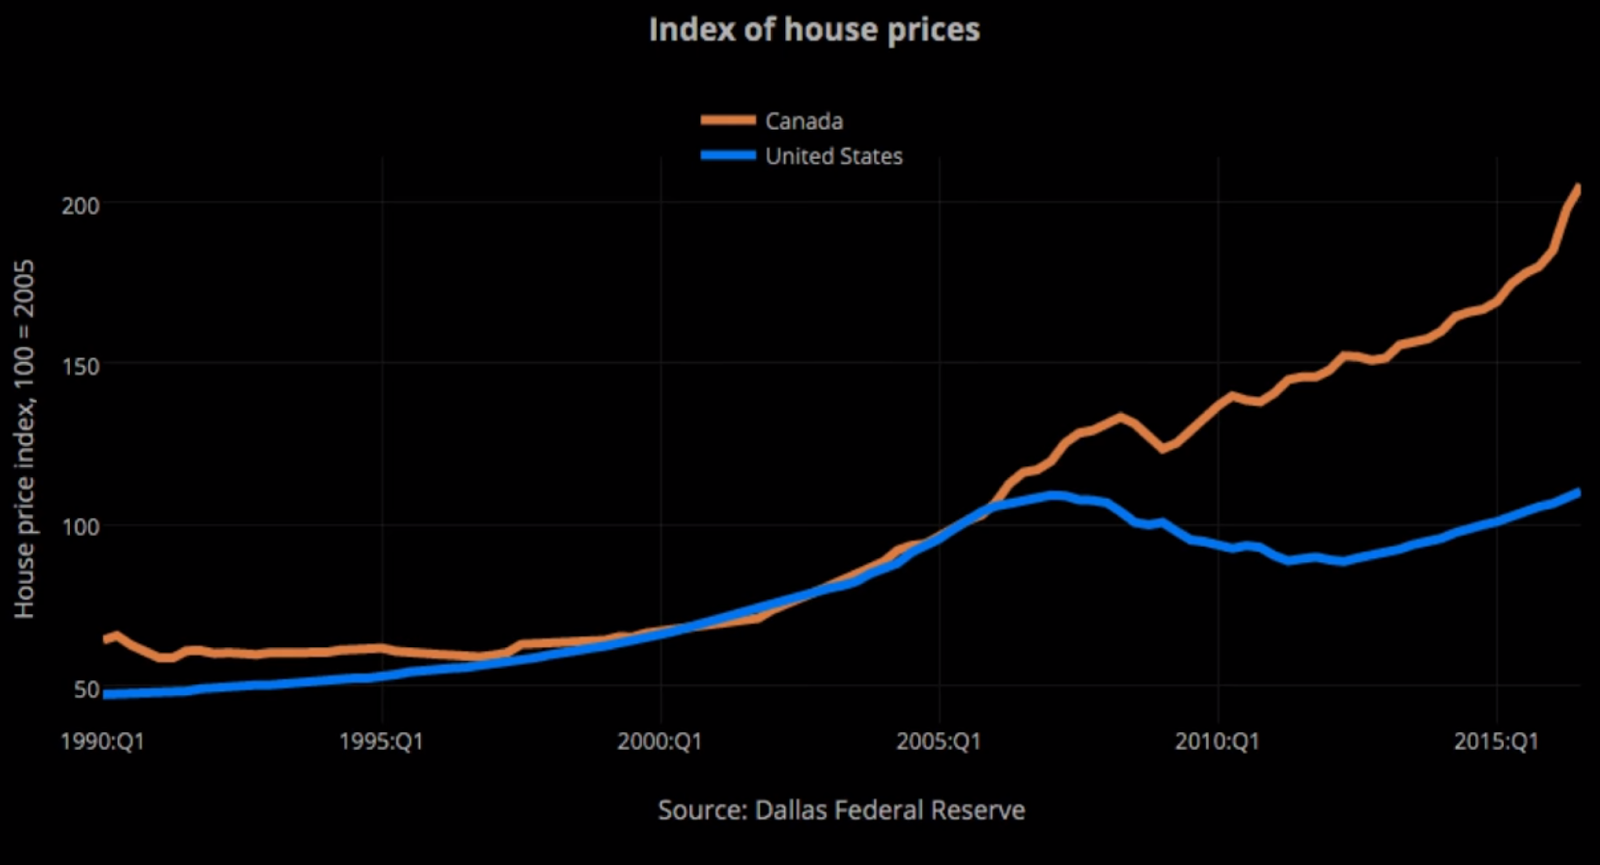 Index of House Prices in the US and Canada